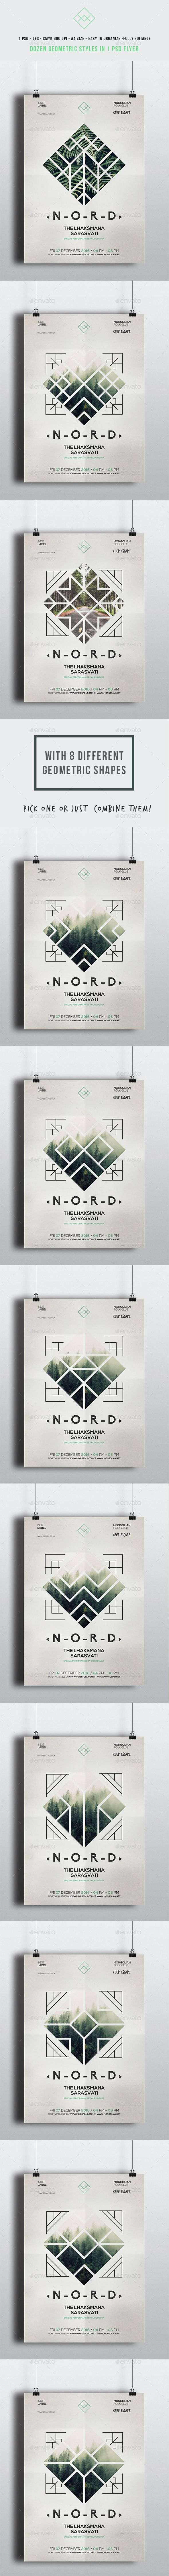 Geometric Alternative Flyer Template PSD. Download here: graphicriver.net/...